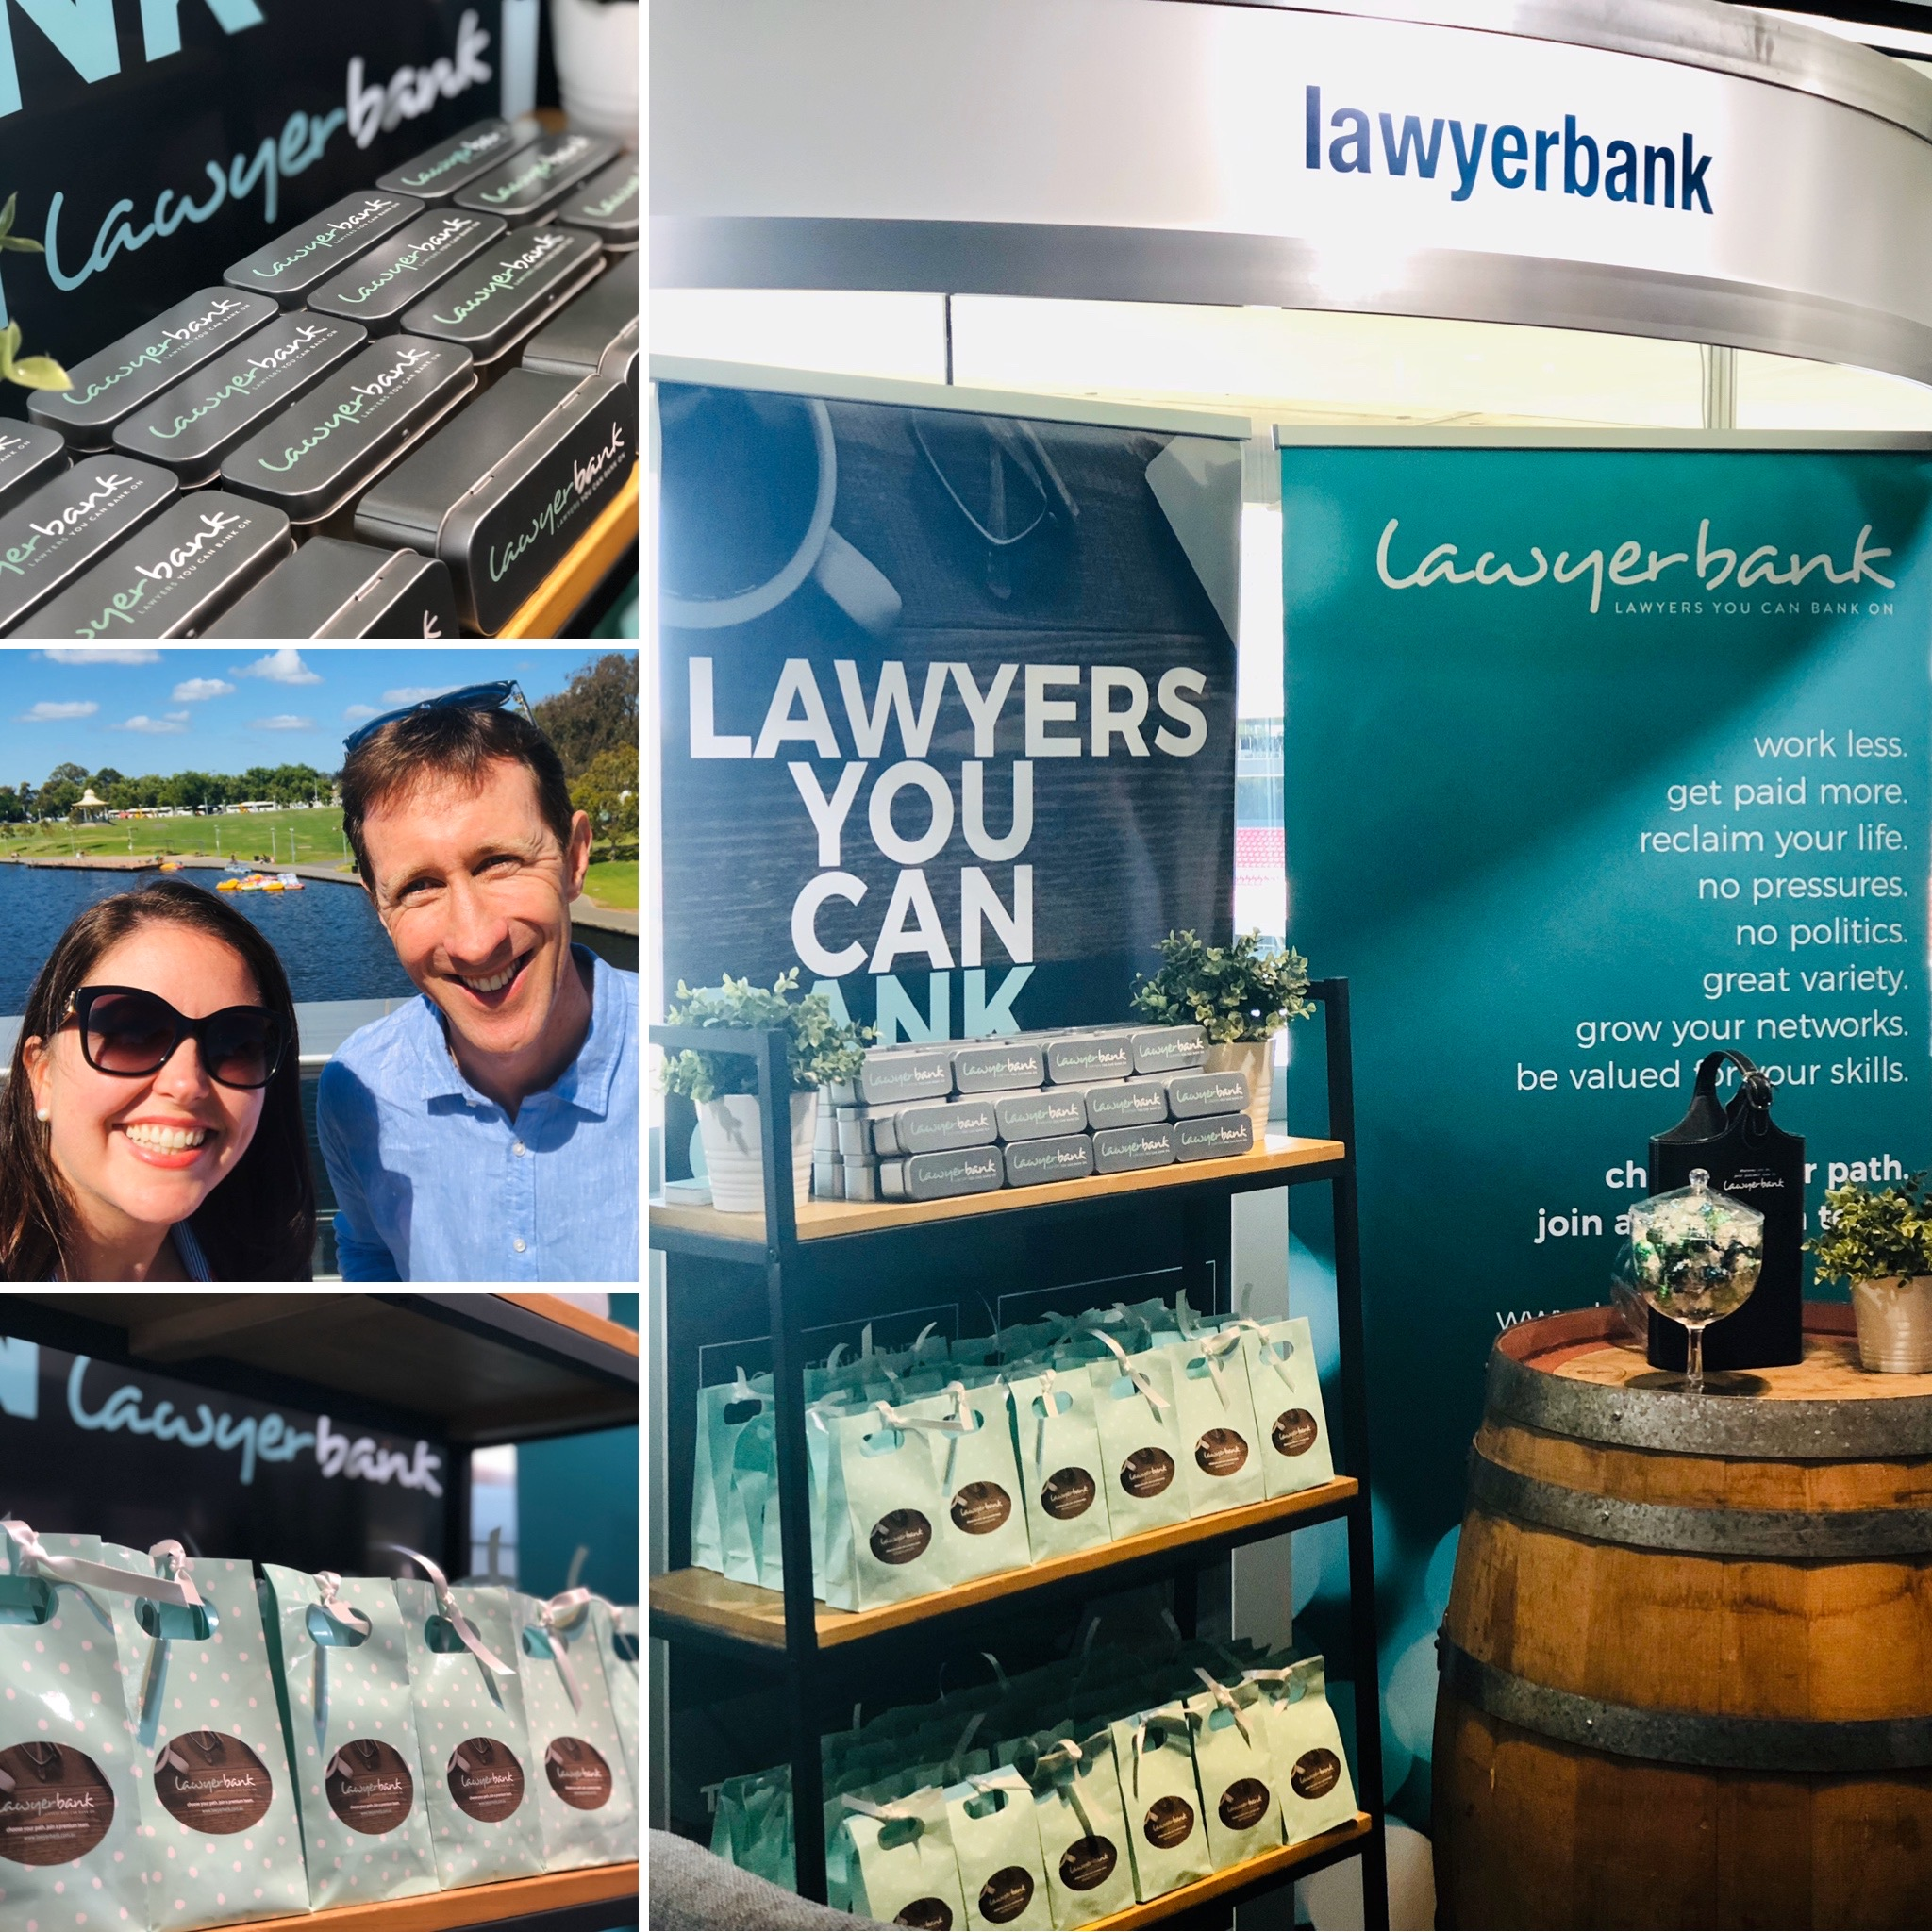 lawyerbank exhibits at the ACC National Conference 2019